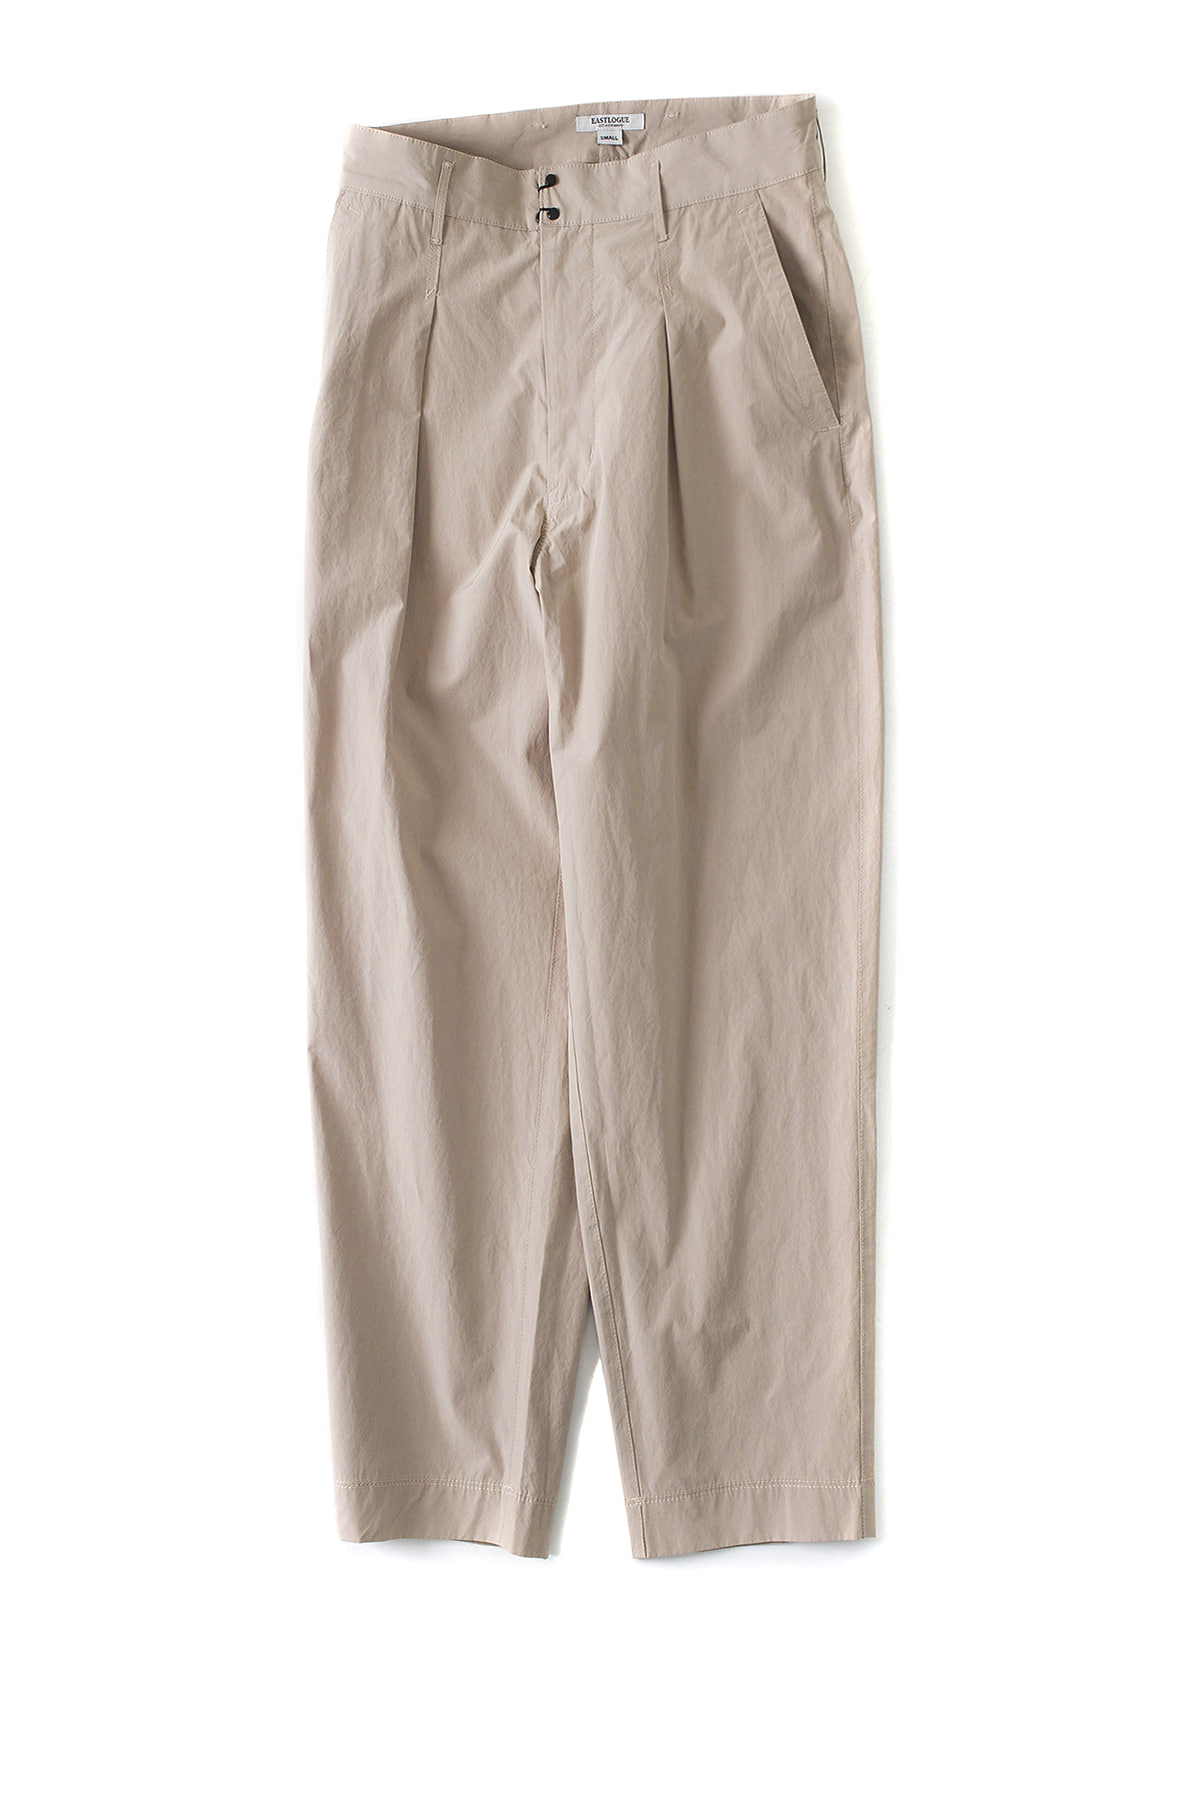 Eastlogue : Holiday Pants (Beige)